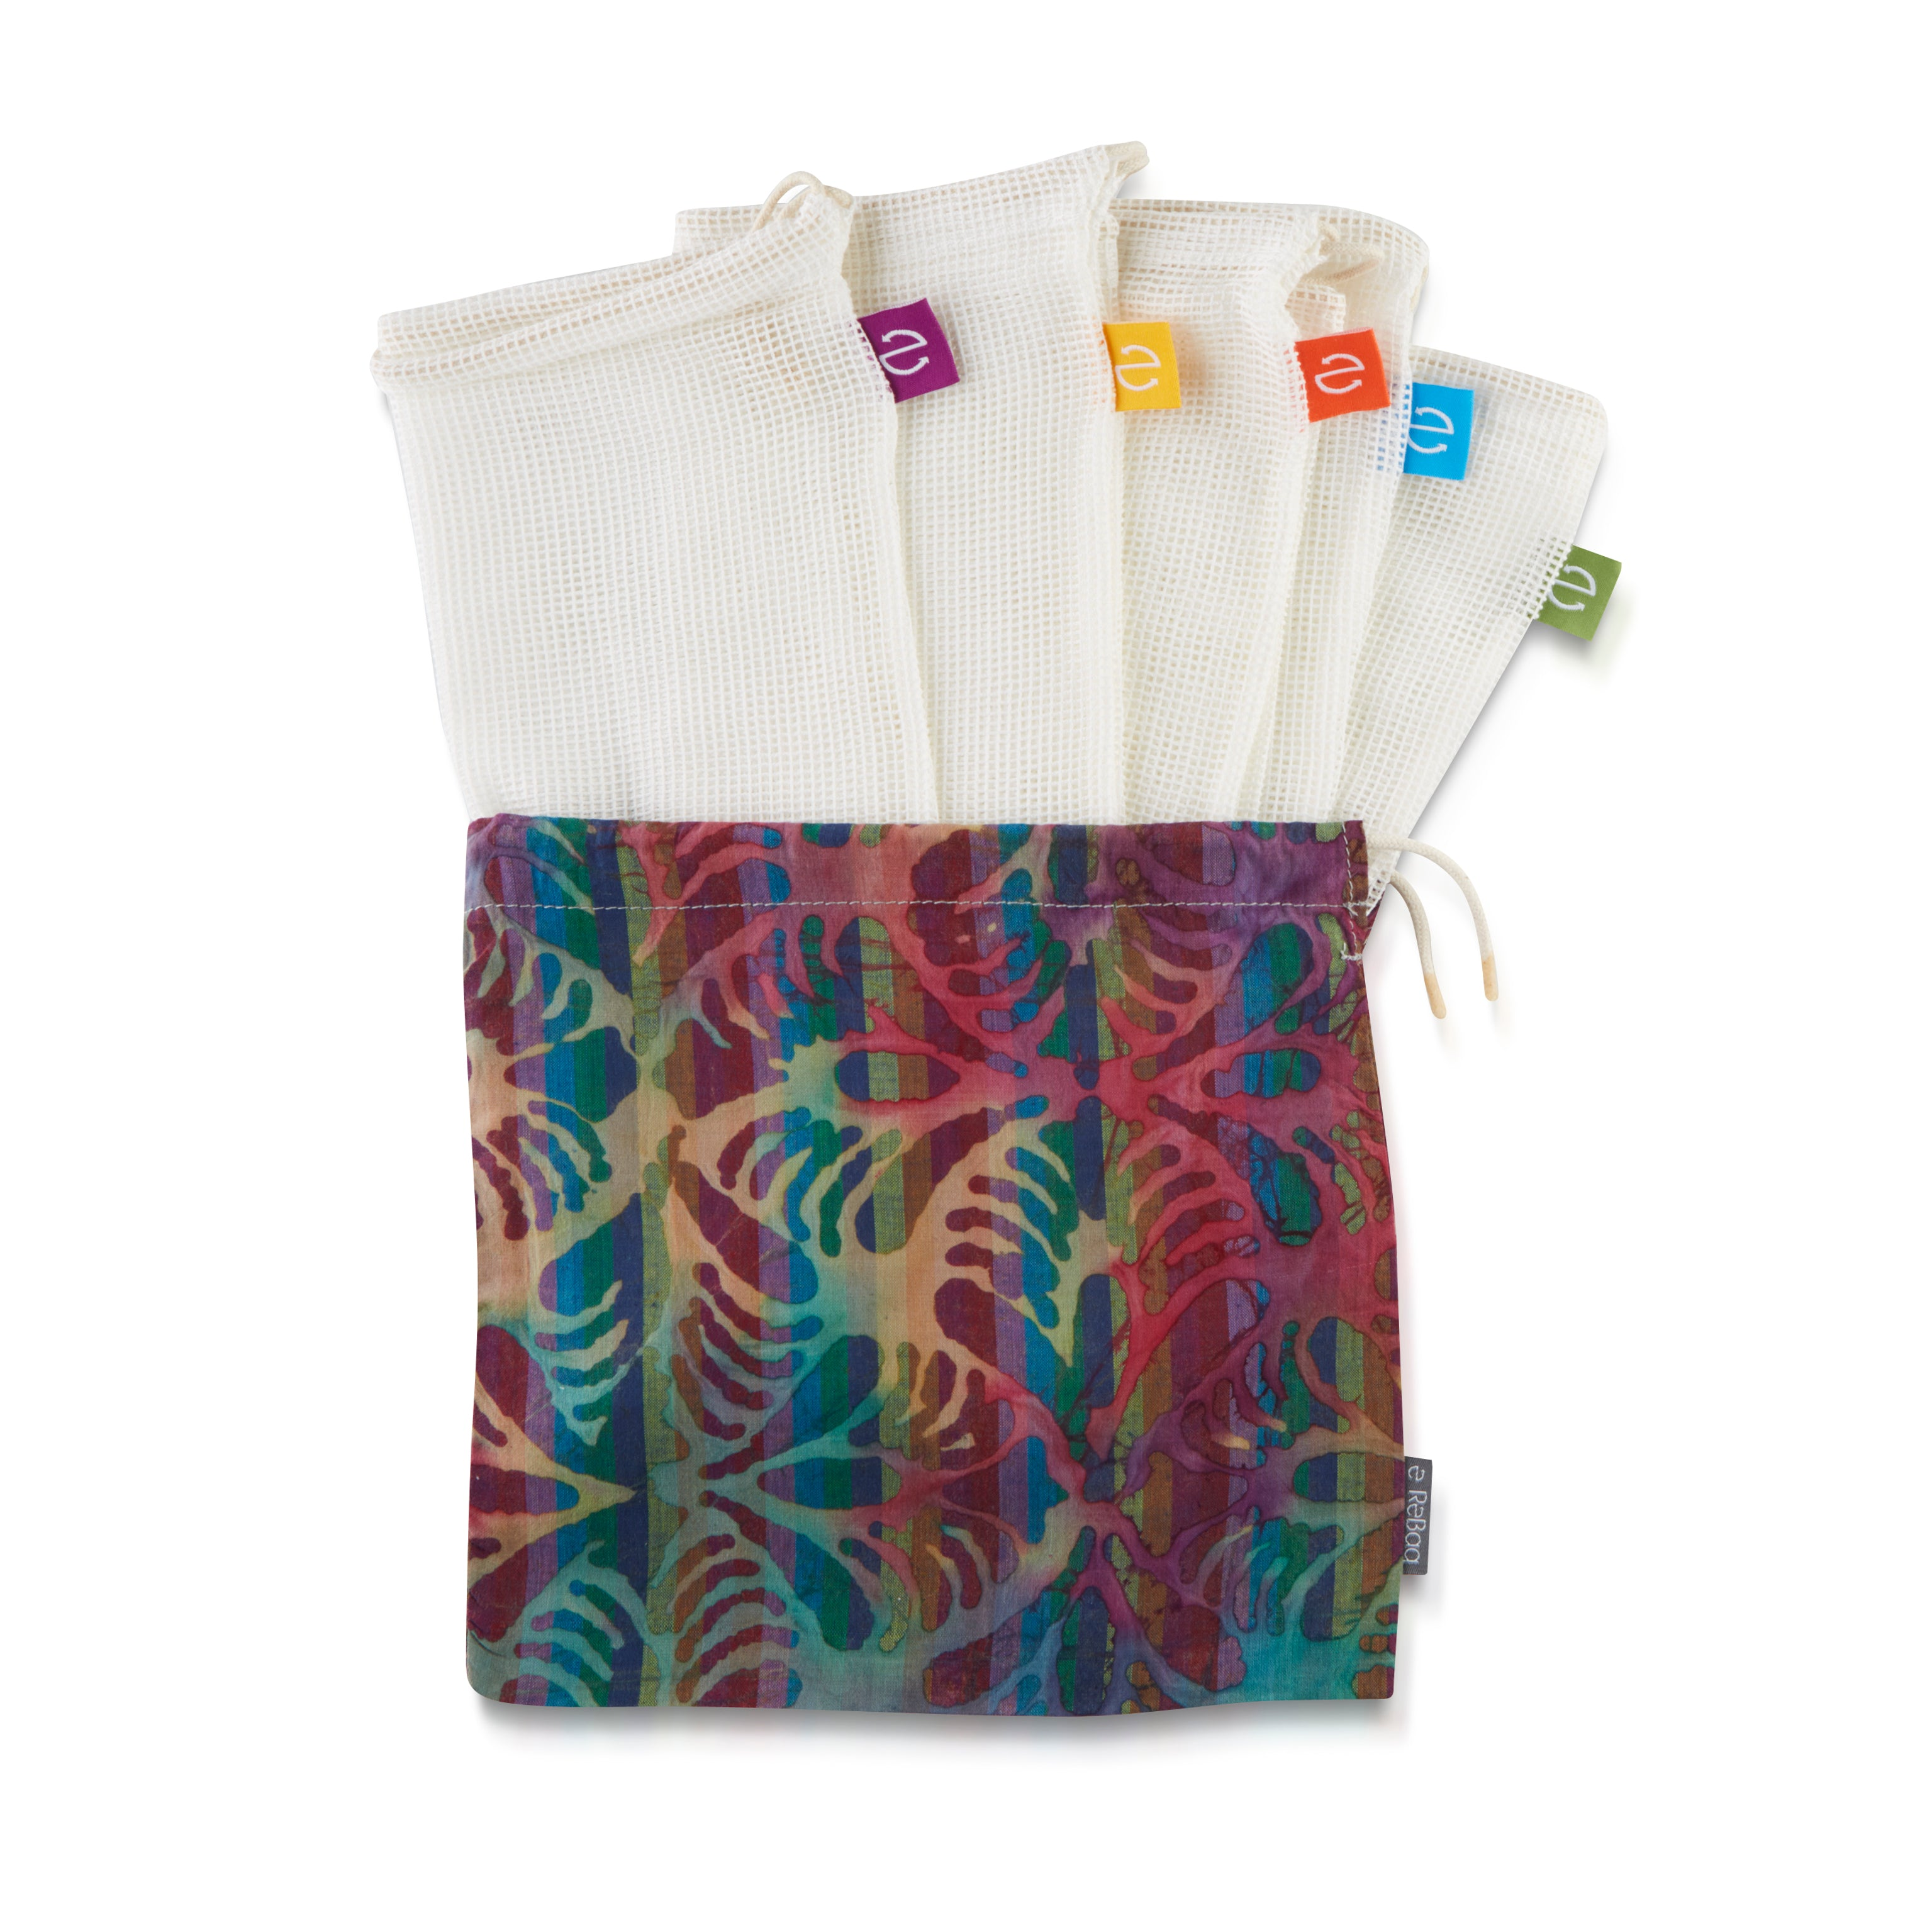 Copy of 5x Produce Bags + Batik Carry Bag